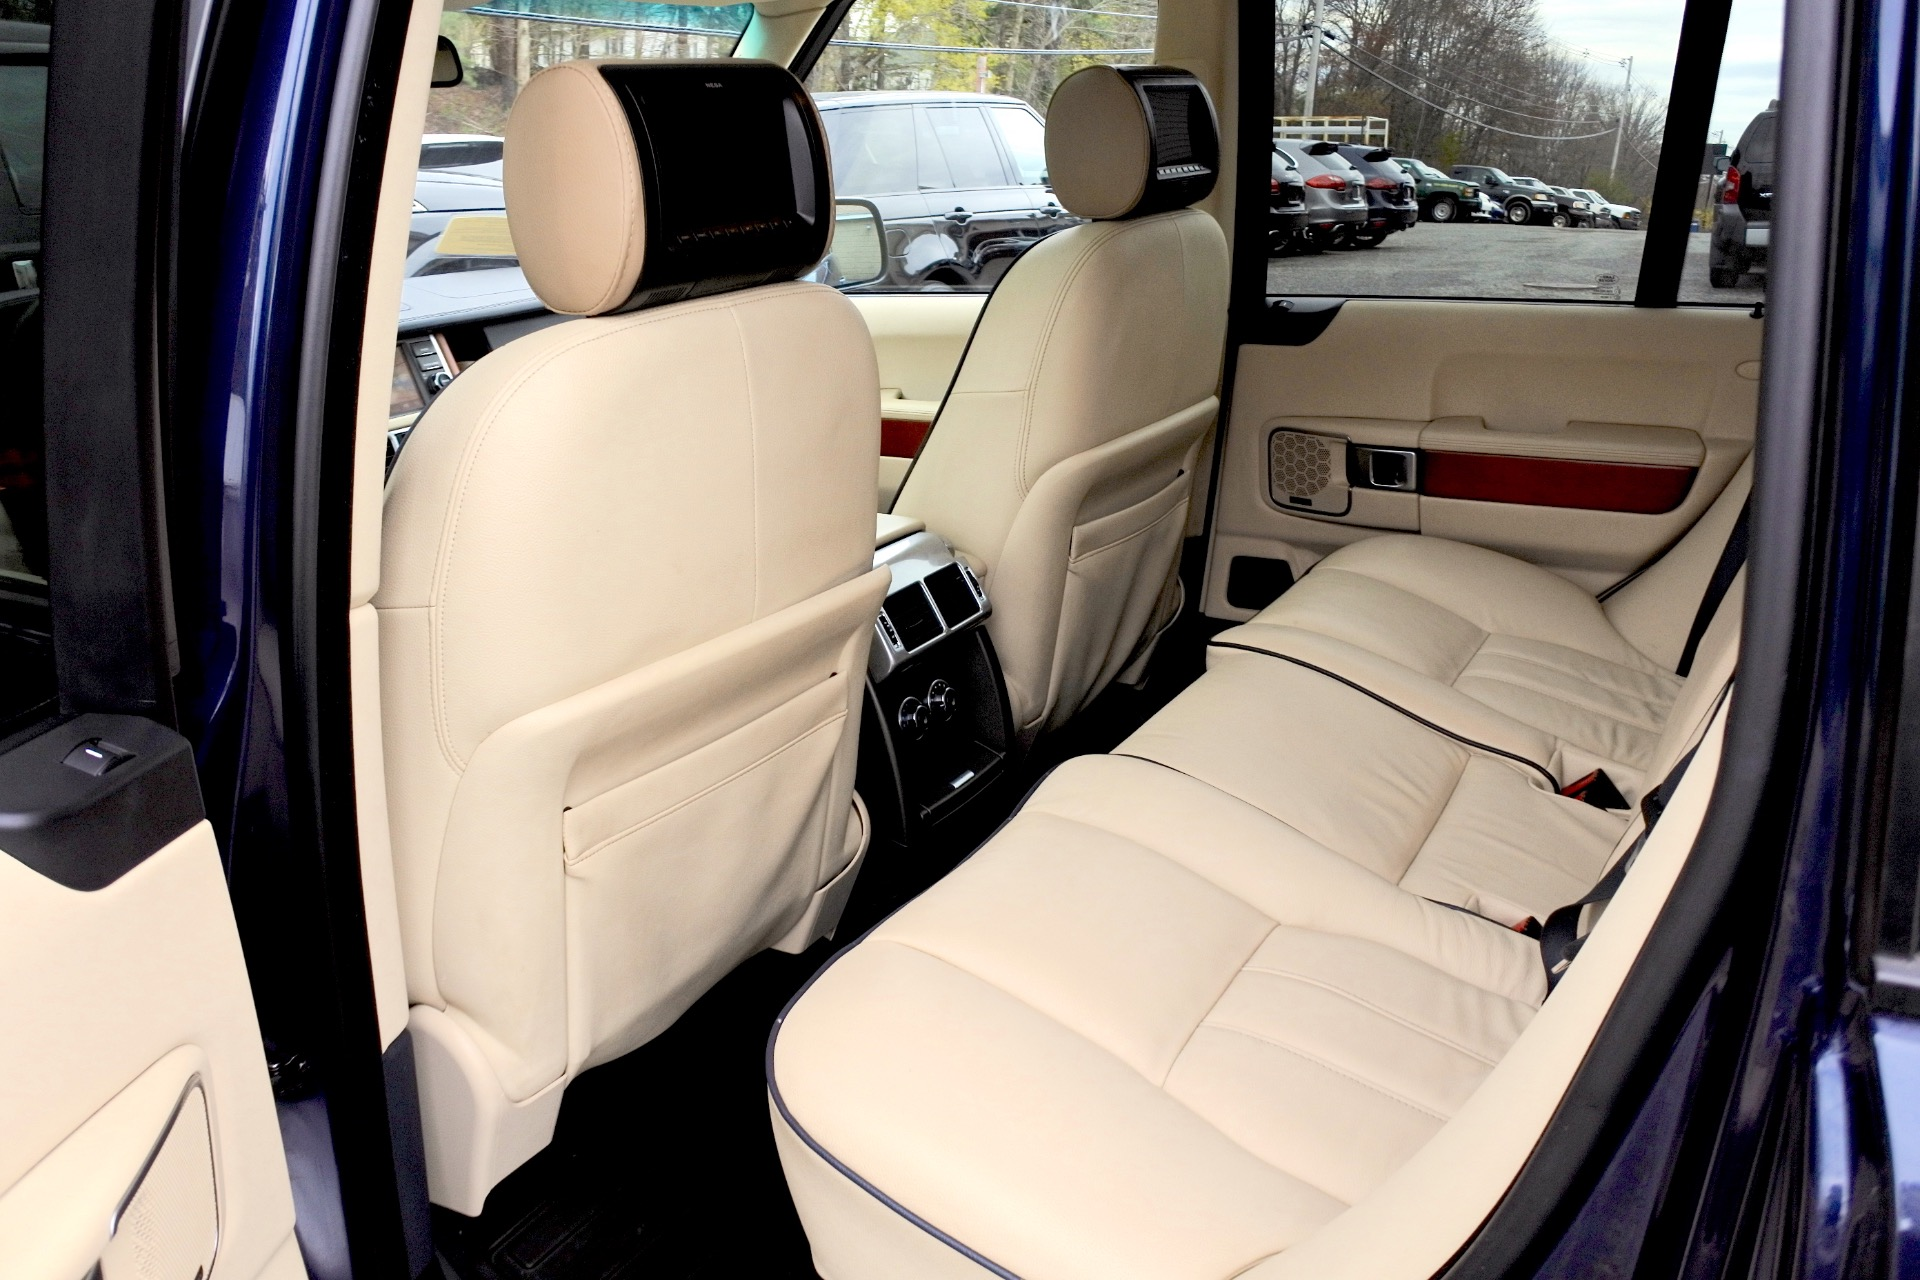 Used 2011 Land Rover Range Rover HSE Used 2011 Land Rover Range Rover HSE for sale  at Metro West Motorcars LLC in Shrewsbury MA 15